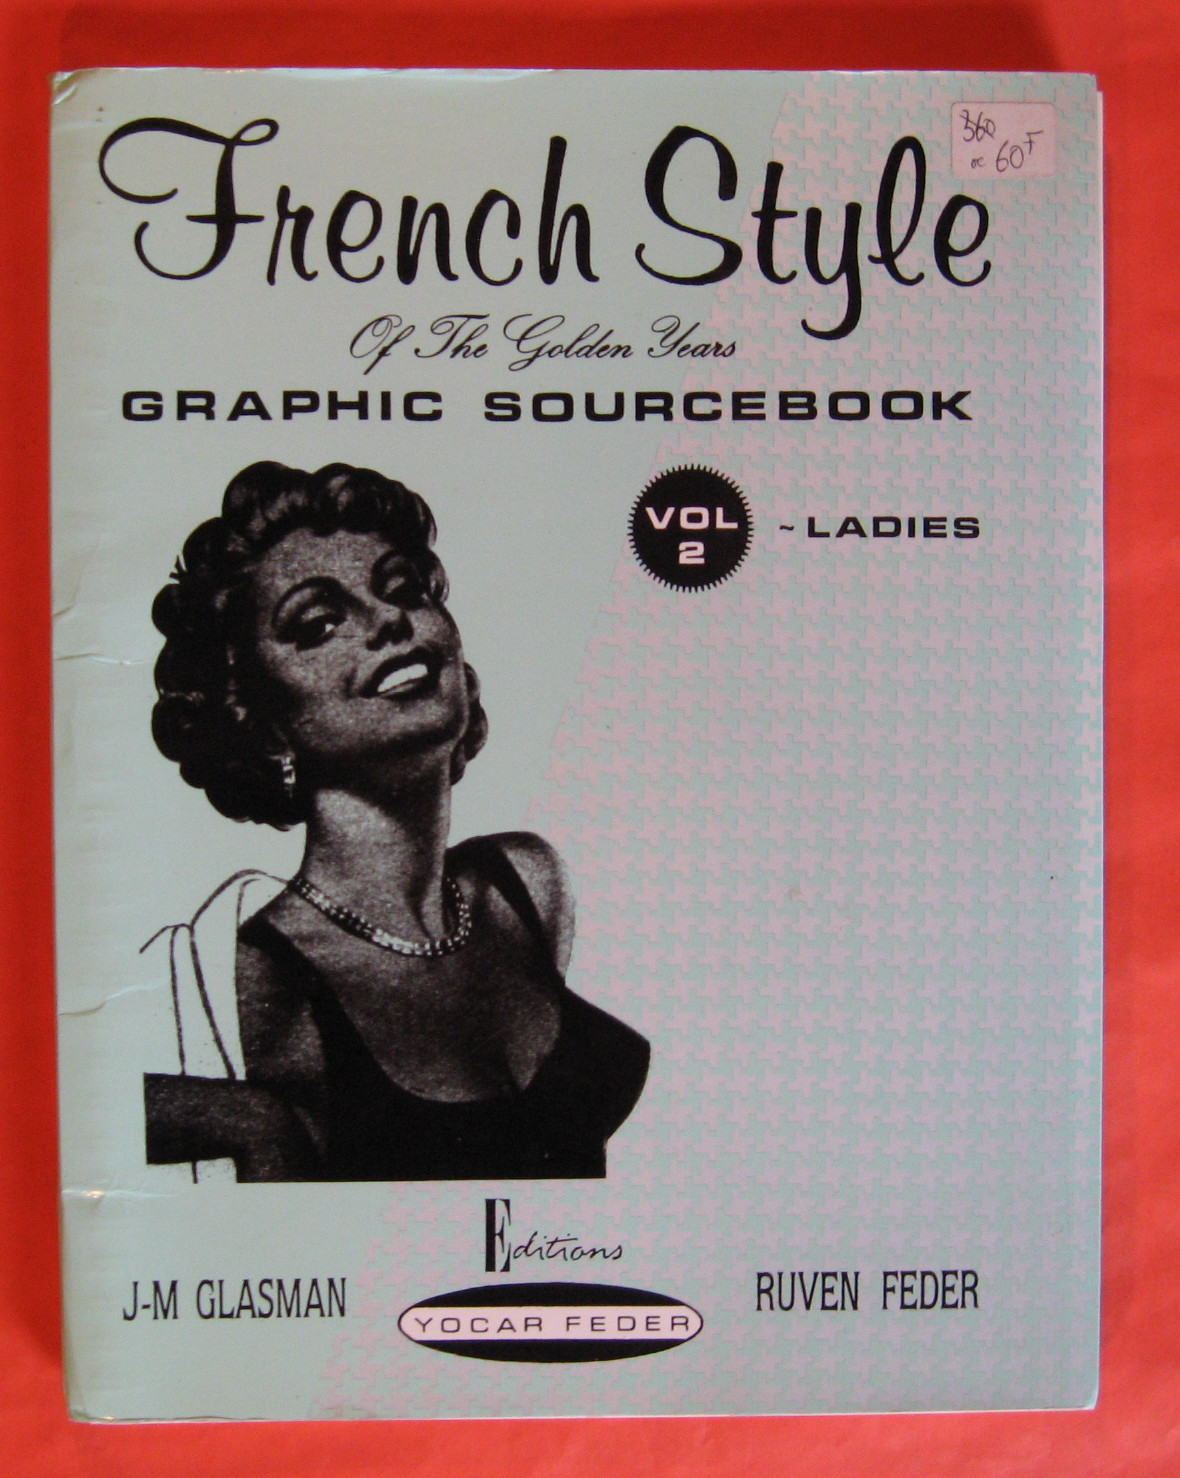 French Style of the Golden Years: Graphic Sourcebook Vol. 2 Ladies, Glasman, J-M;  Ruven Feder